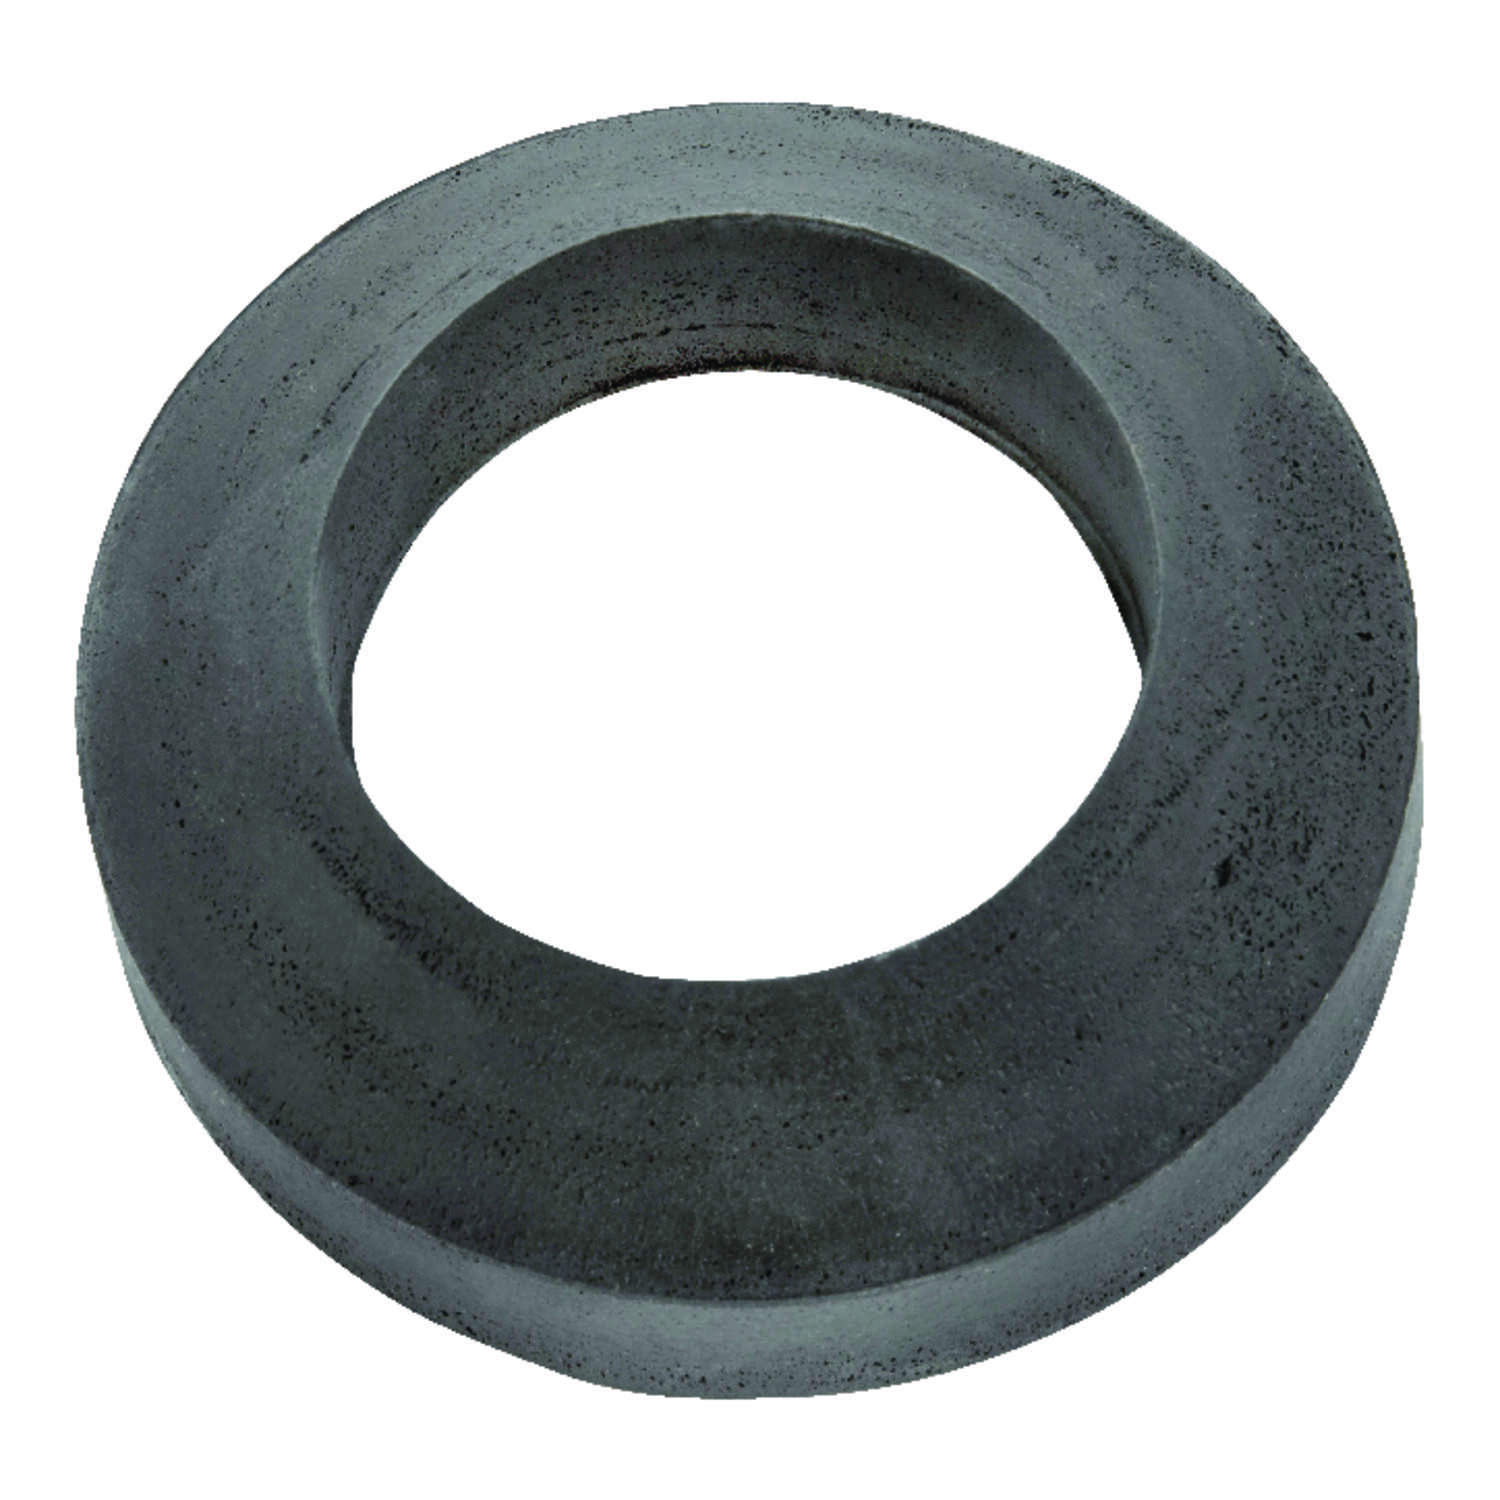 Ace  Tank to Bowl Gasket  3-1/2 in. H x 2-1/2 in. L Rubber